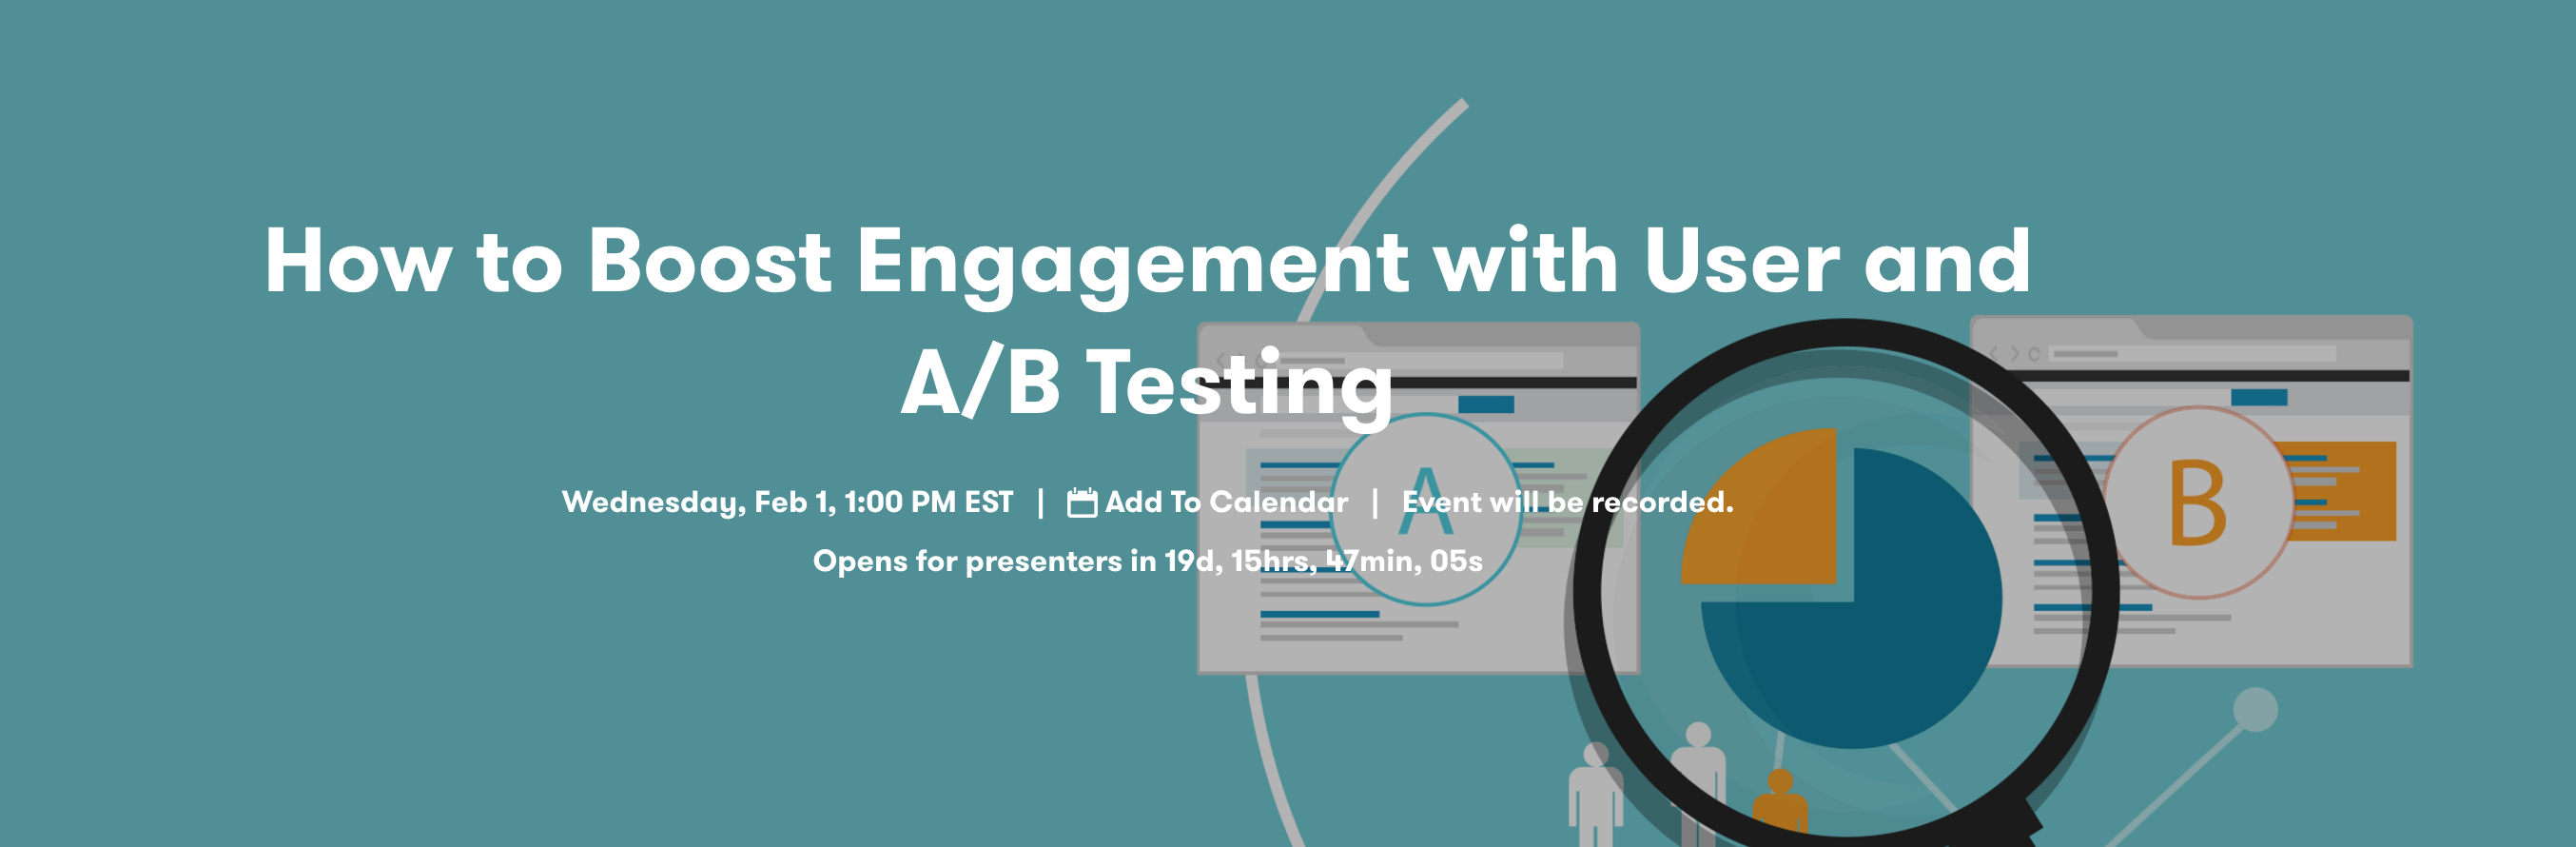 How to Boost Engagement with User and A/B Testing